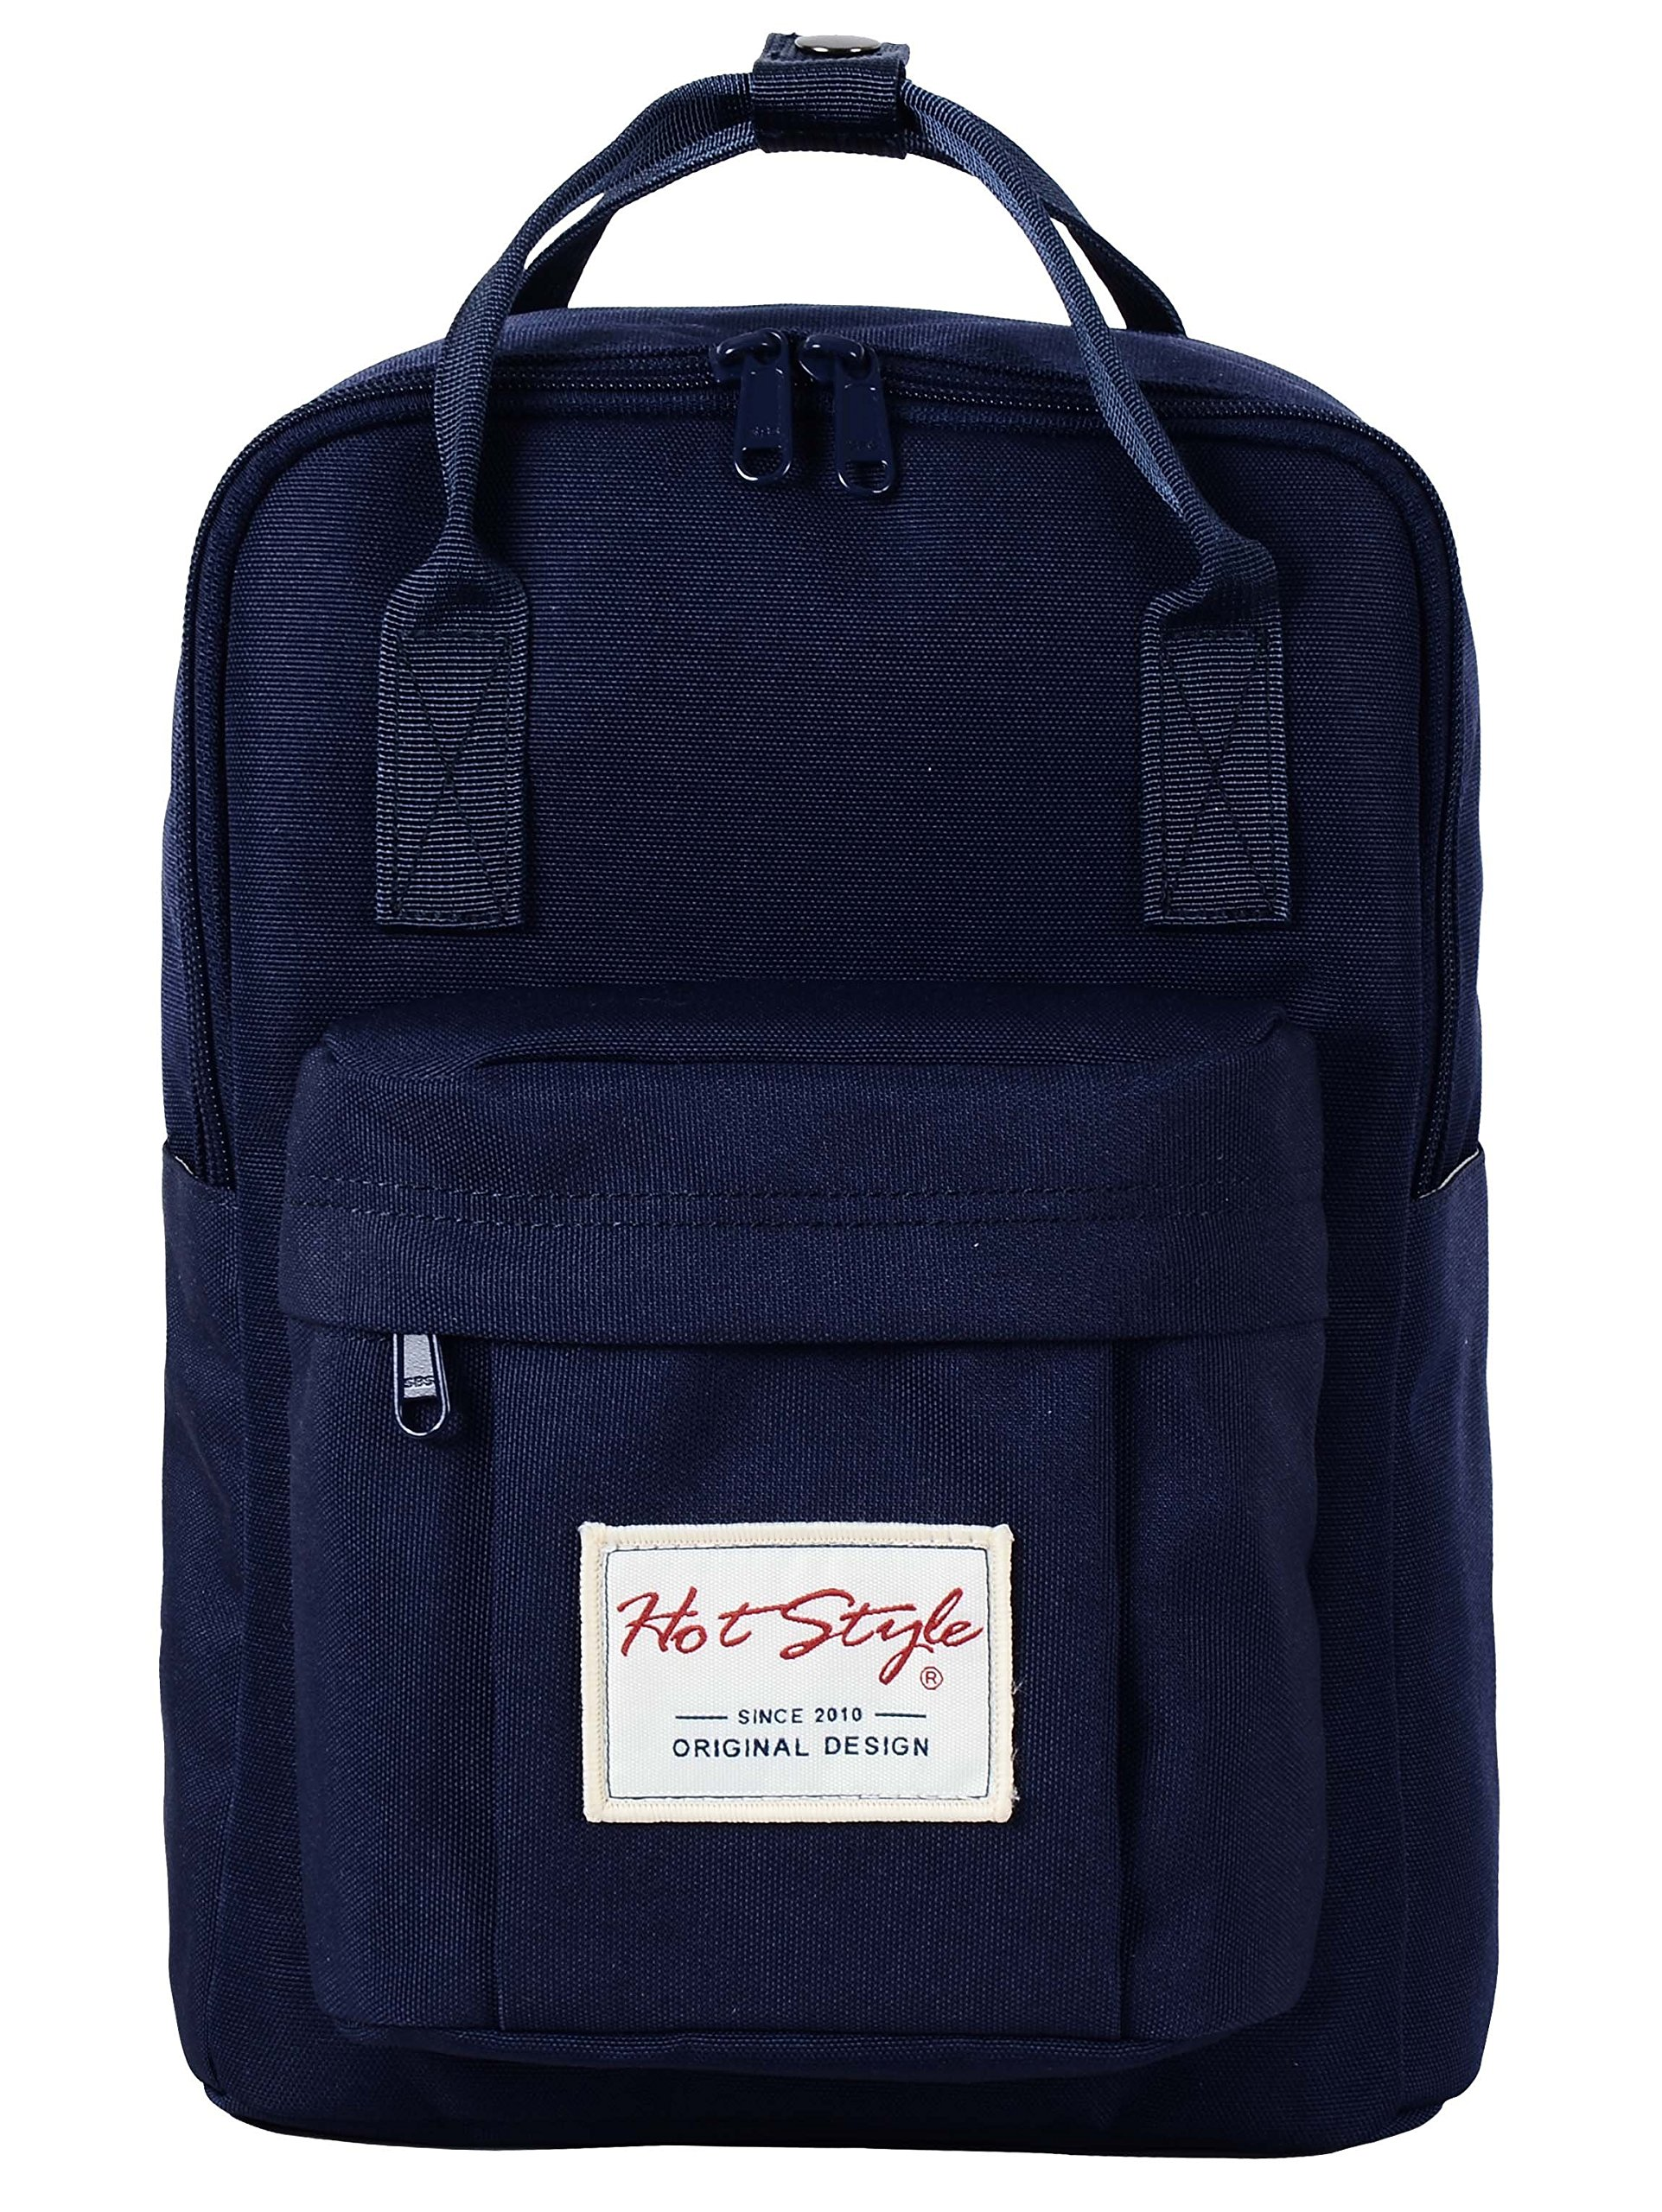 BESTIE 12'' Cute Mini Small Backpack Purse Travel Bag - NavyBlue by hotstyle